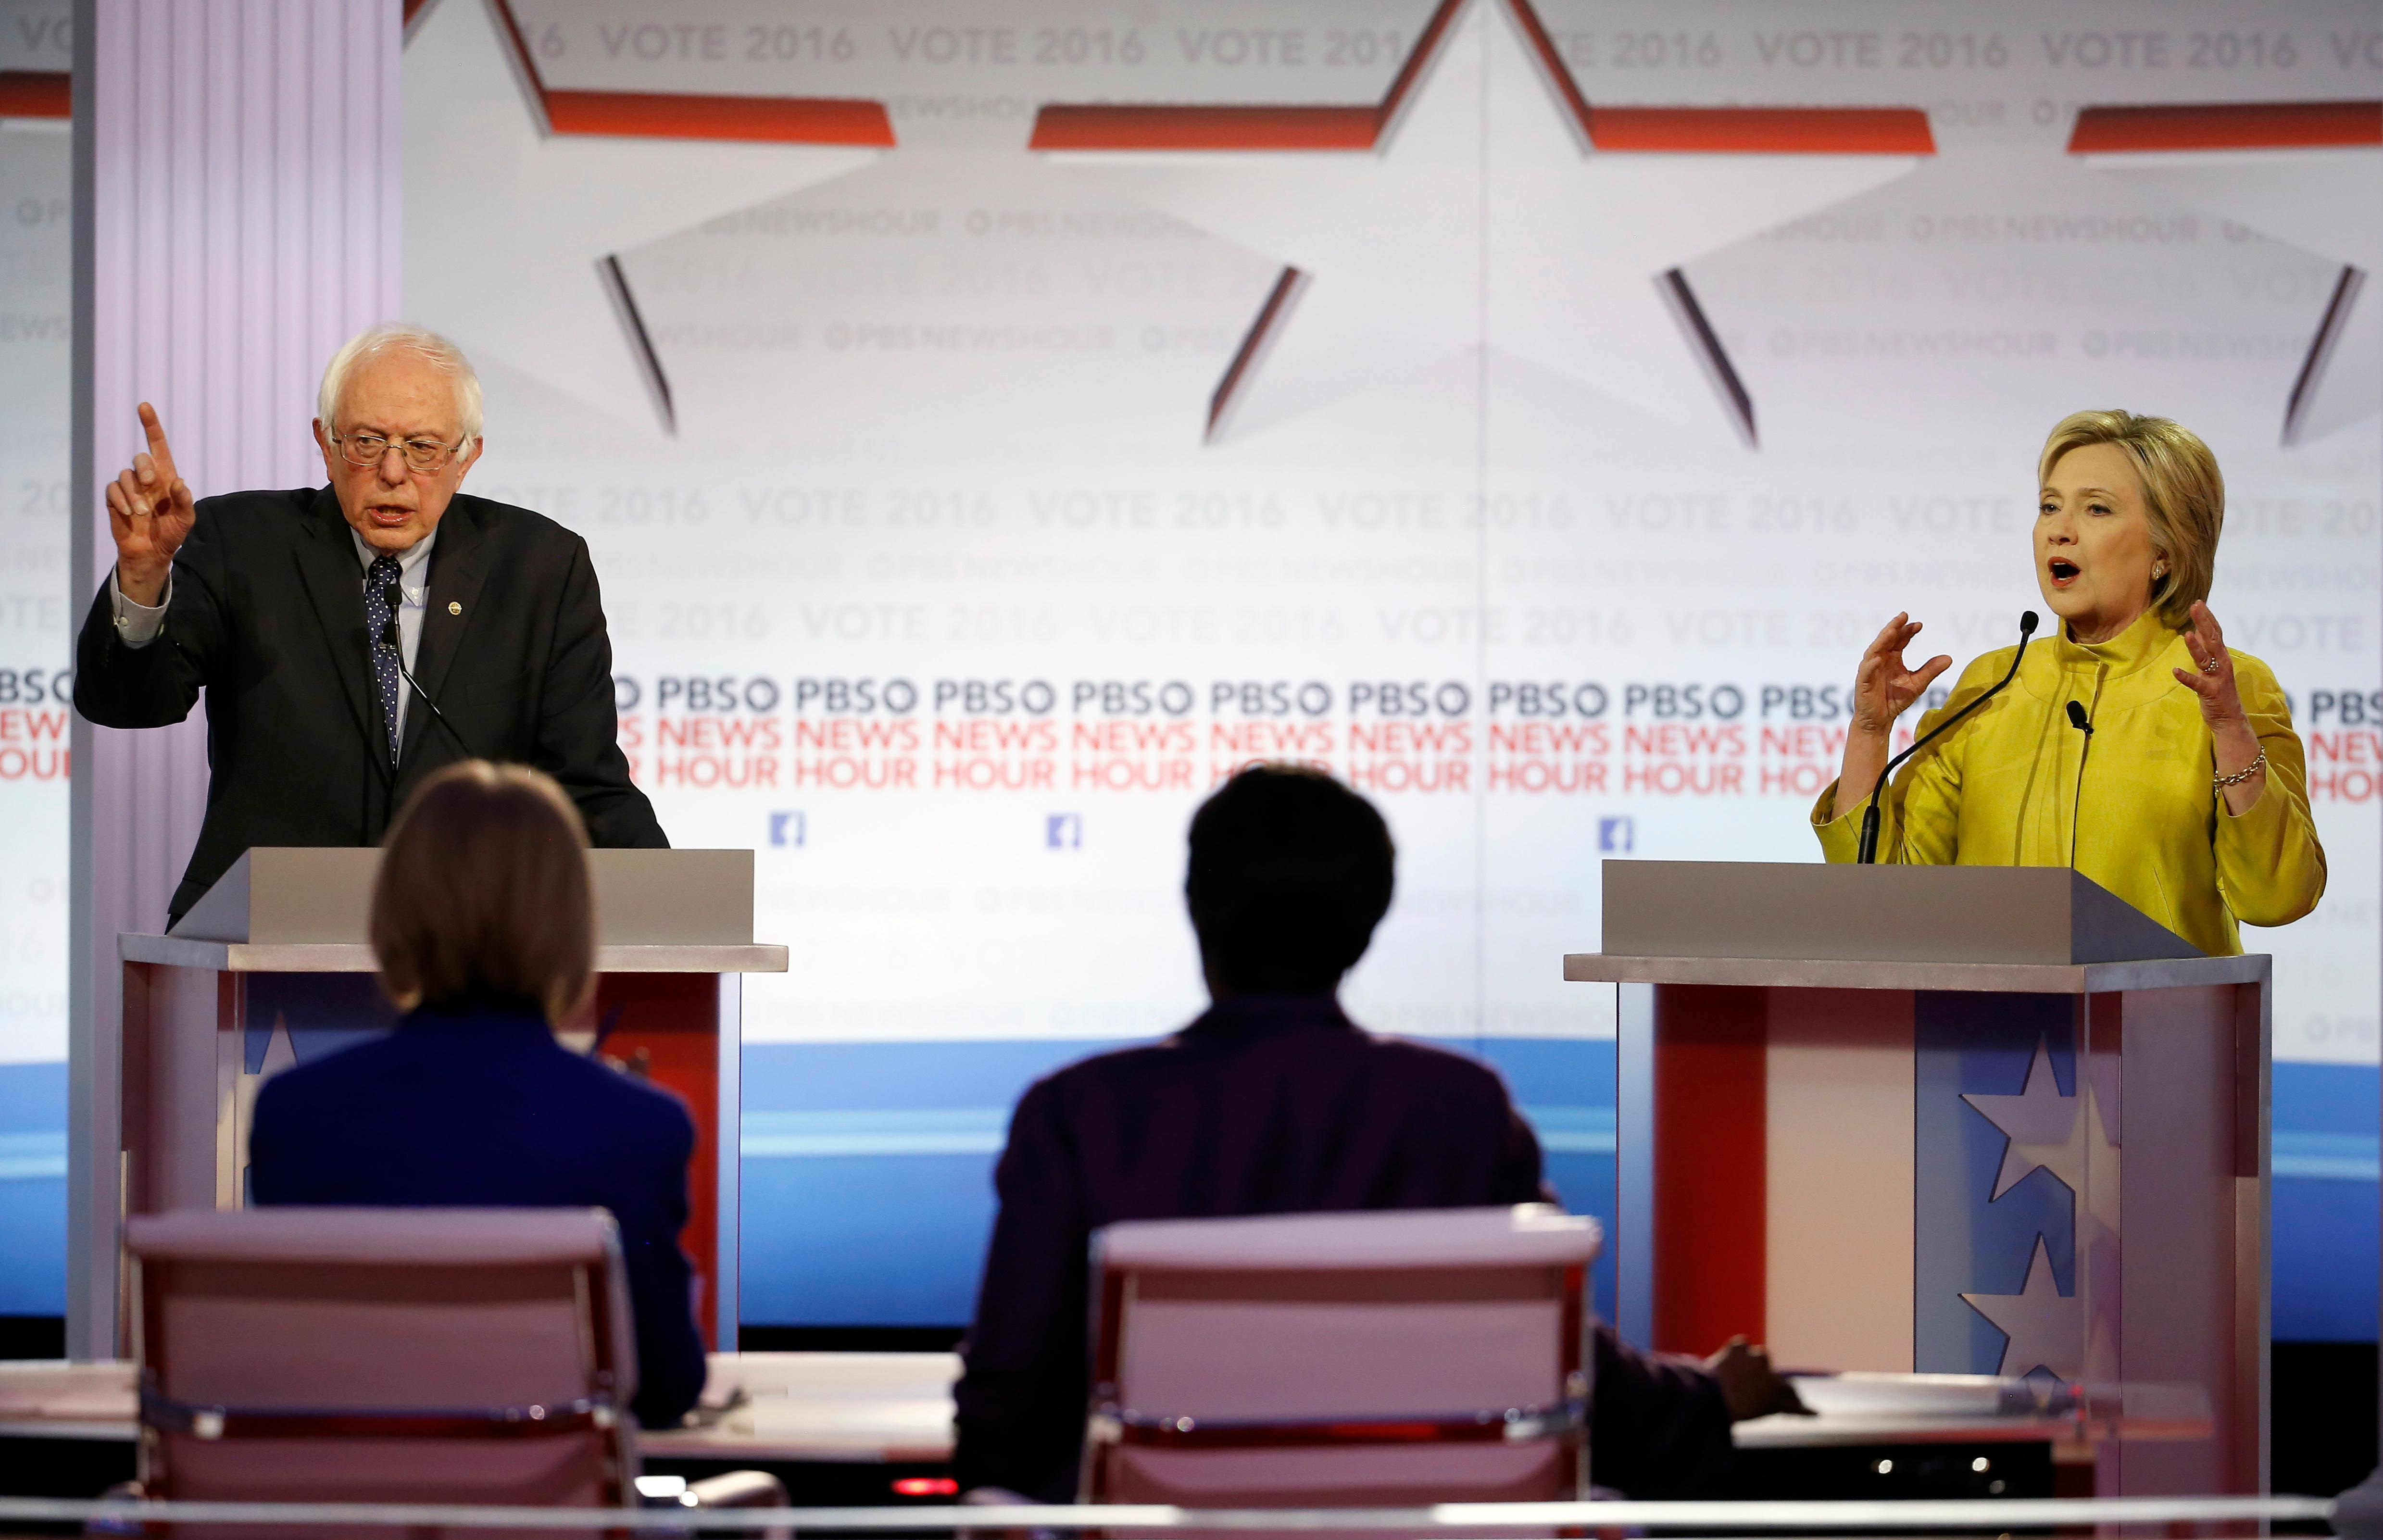 Hillary Clinton and Bernie Sanders spar over super-PACs and megadonors